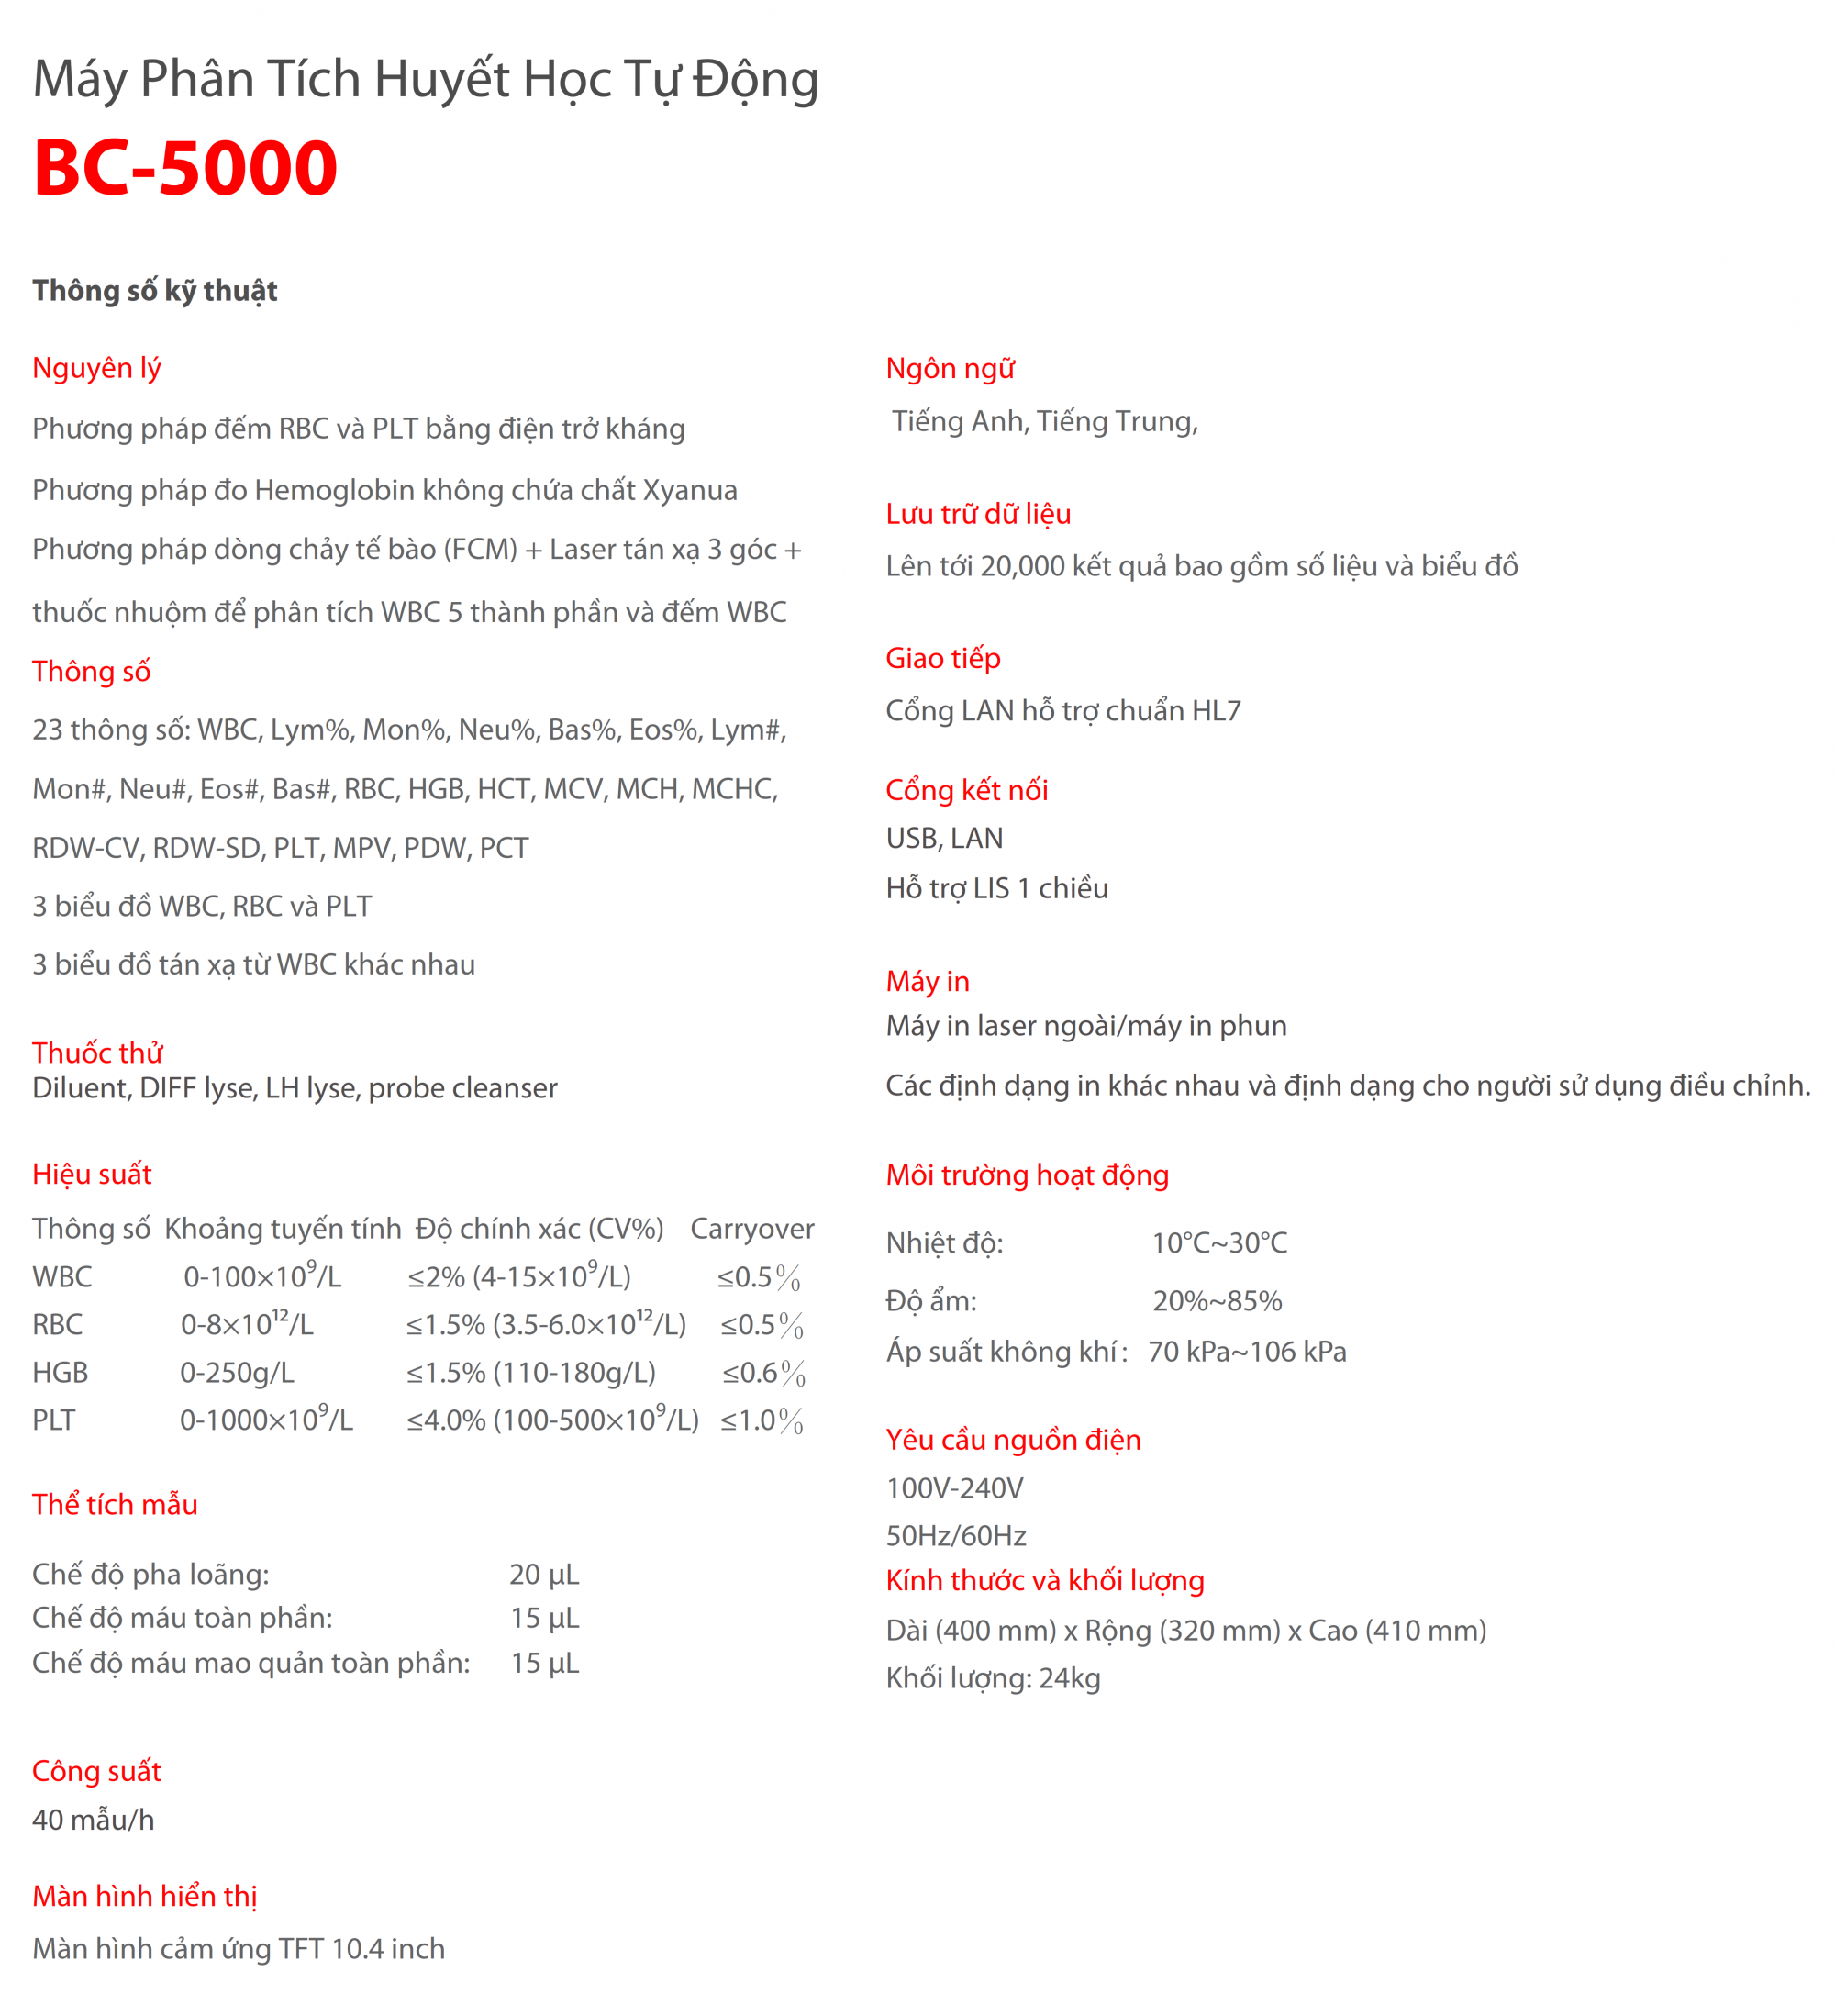 Catalogue_BC-5000_TV_6